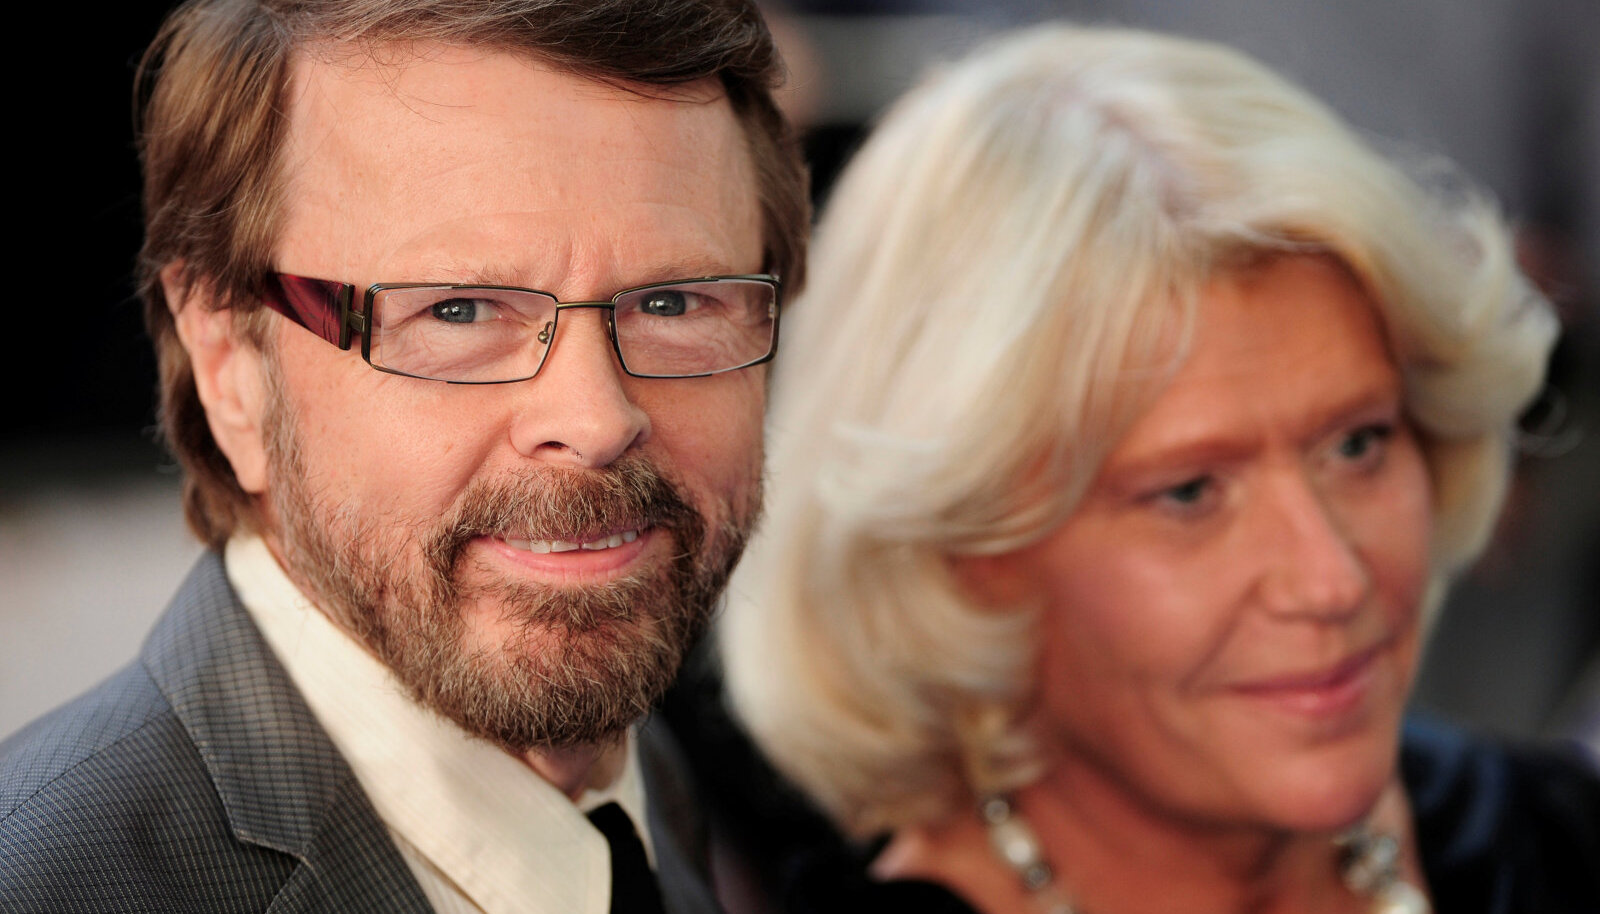 Björn Ulvaeus and his wife Lena